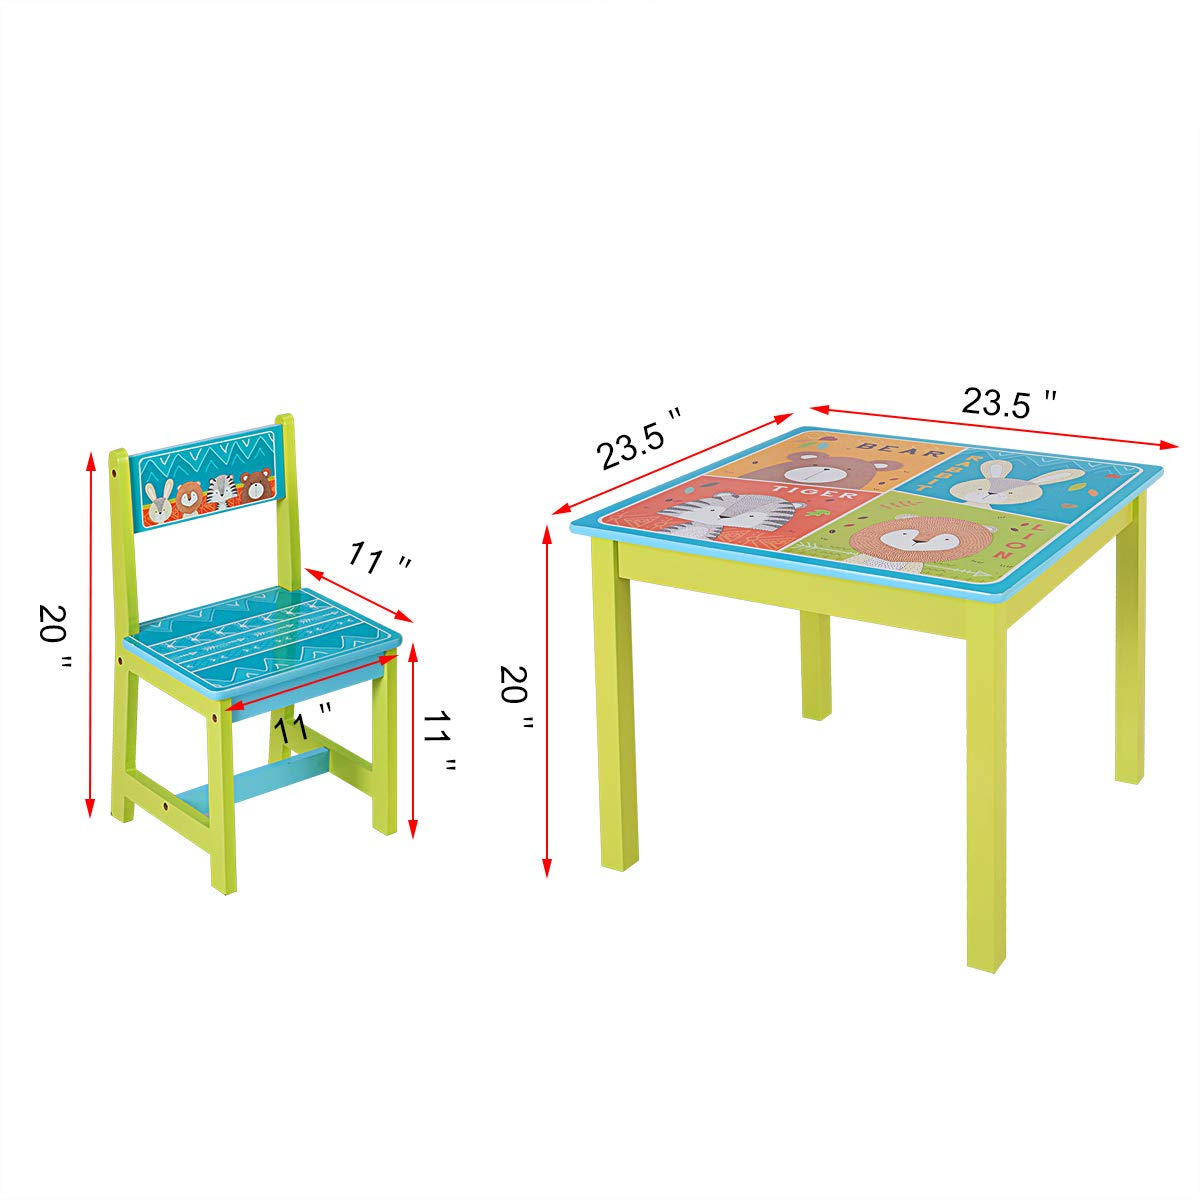 BABY JOY Kids Table and 4 Chairs Set, Wooden MDF Desk for Studying Playing Dining Indoors & Outdoors Activity, Toddler Baby Gift Desk Furniture Cartoon Pattern (Table and 4 Chairs) by BABY JOY (Image #6)